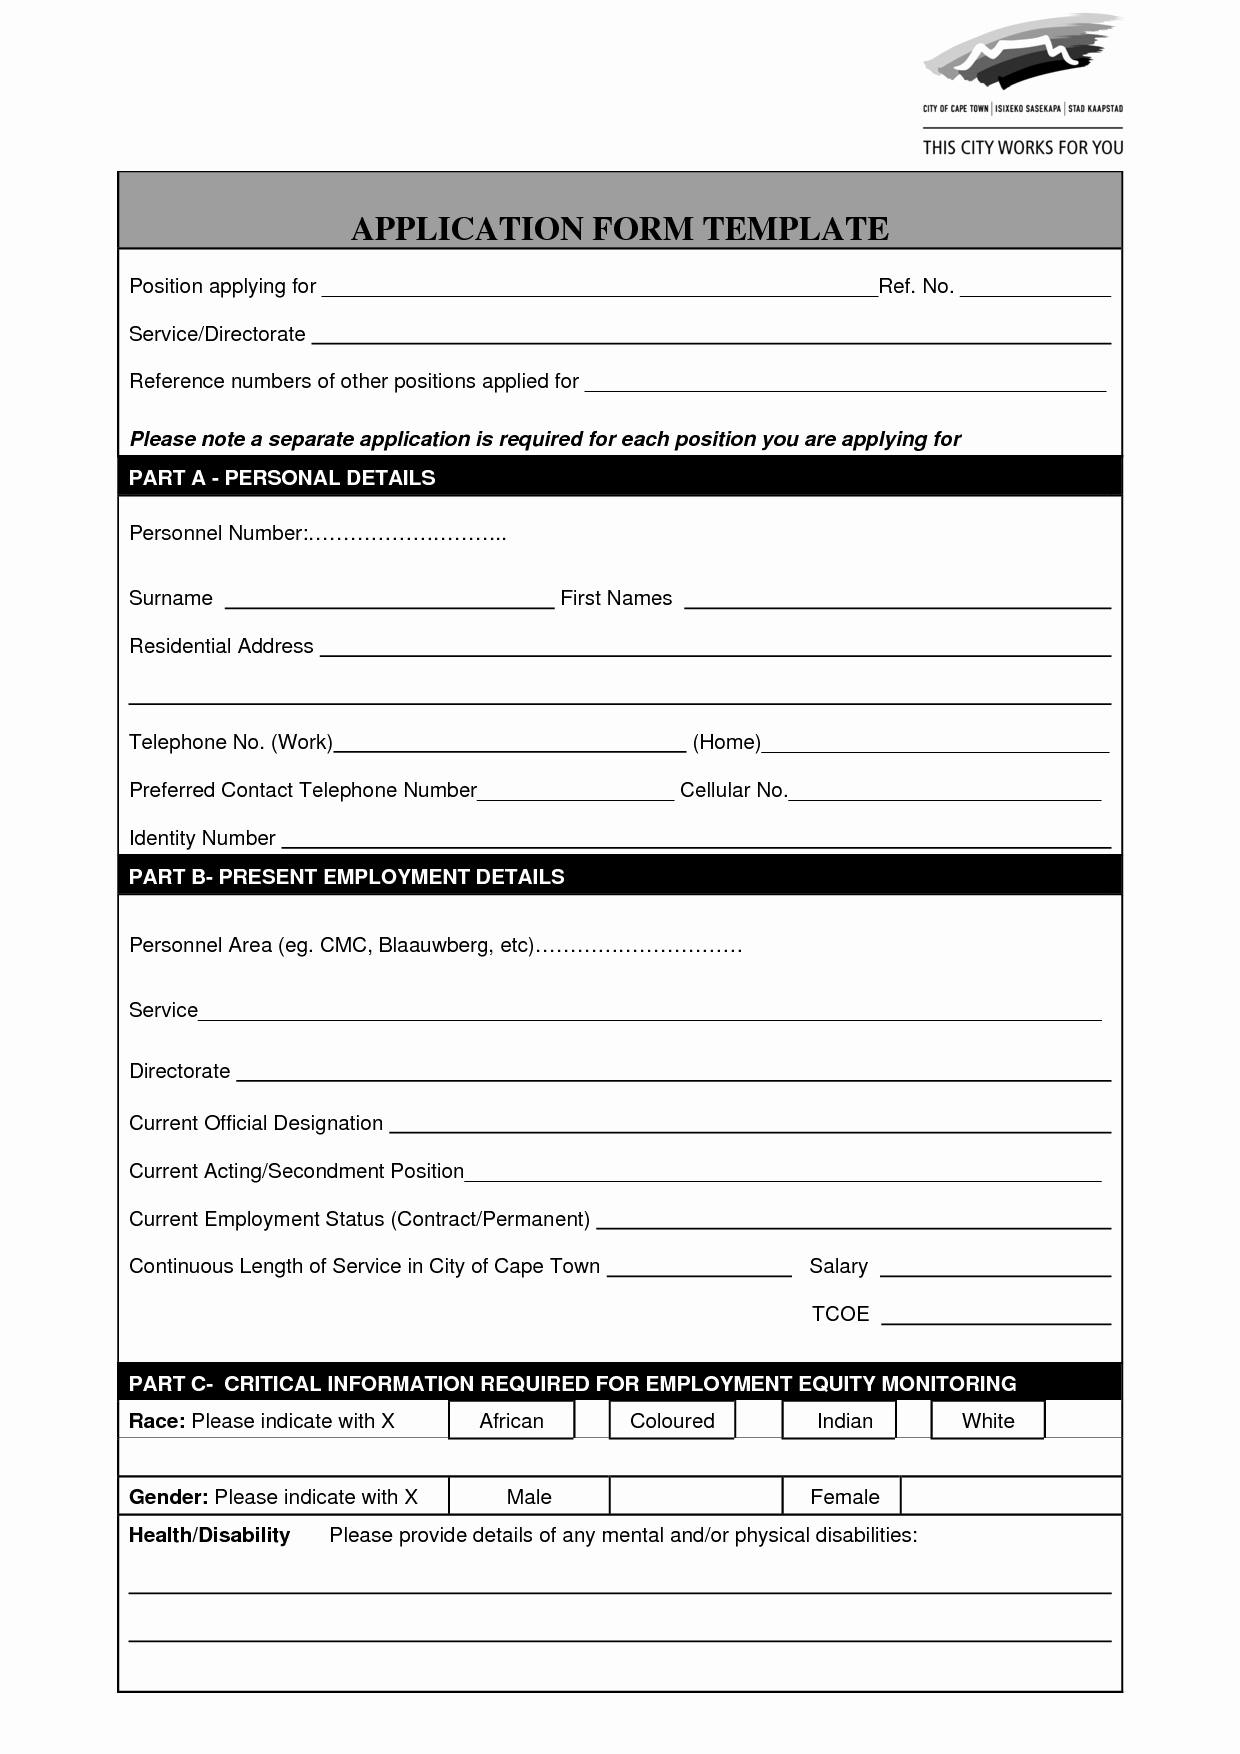 Ms Word form Template Beautiful Word form Templates Bamboodownunder